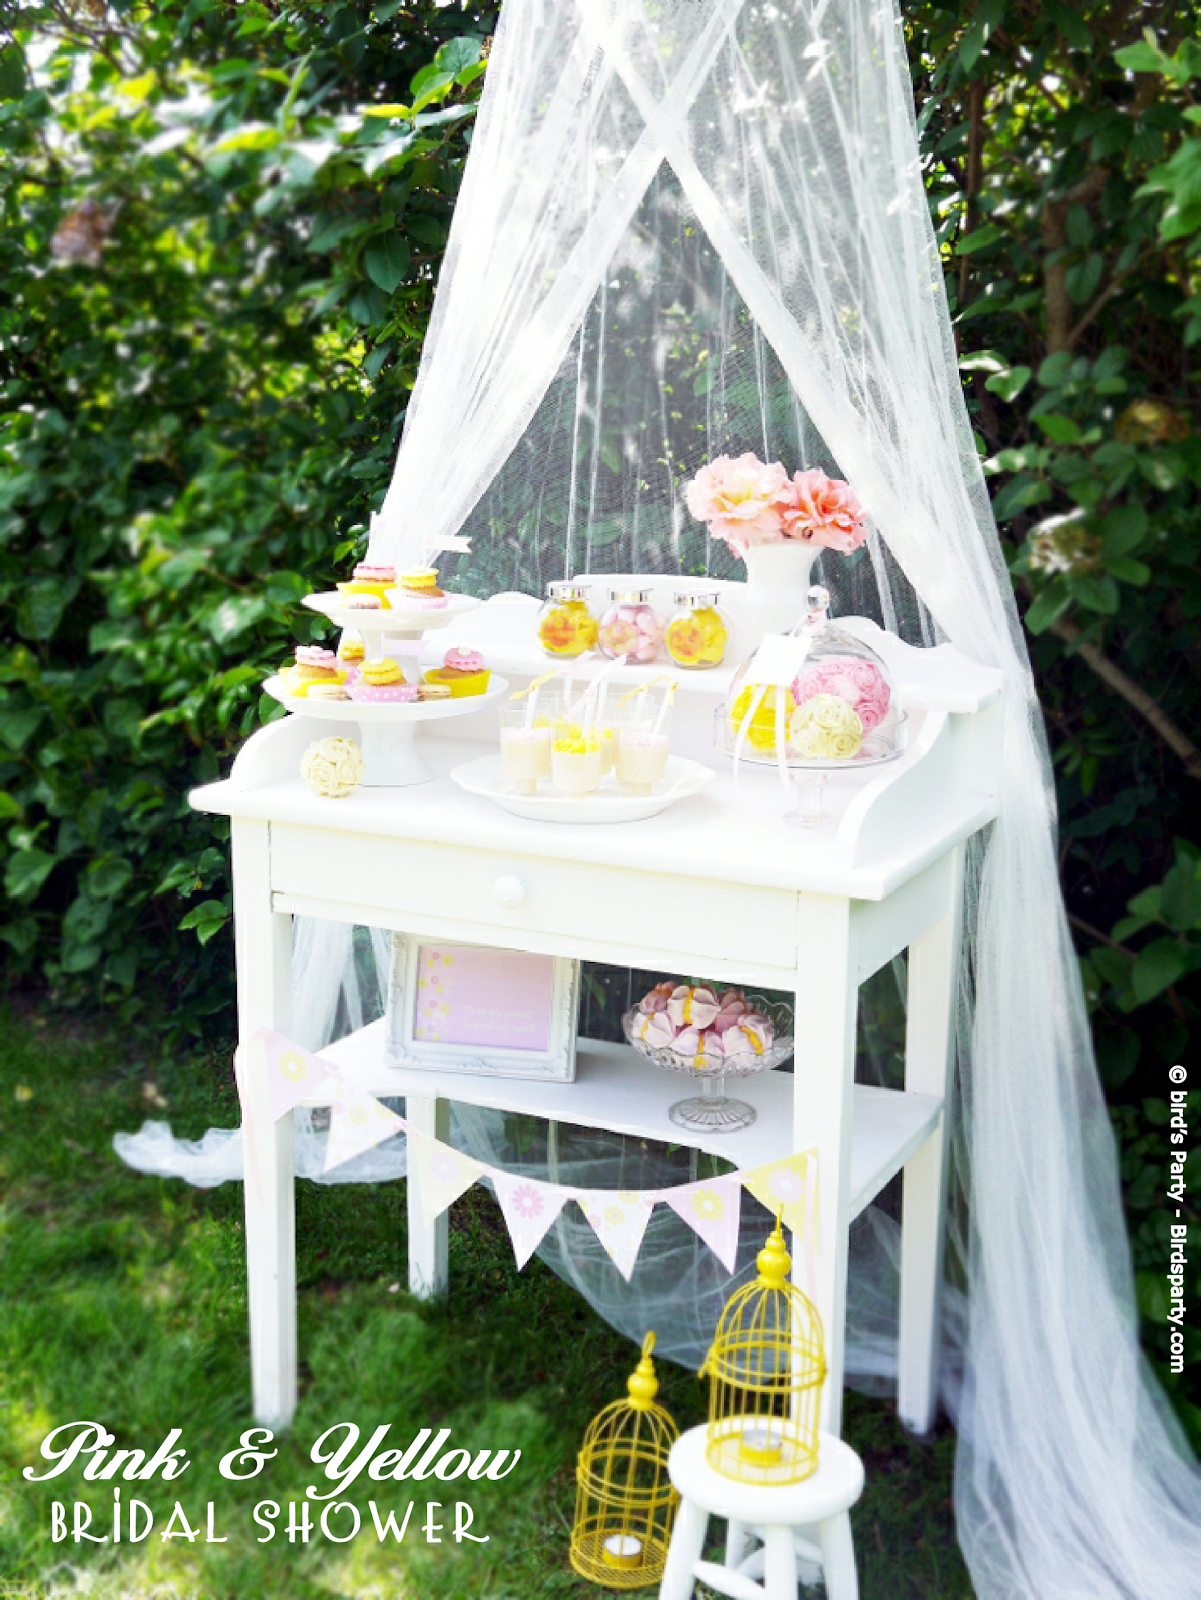 A Pink and Yellow Bridal Shower  - BirdsParty.com